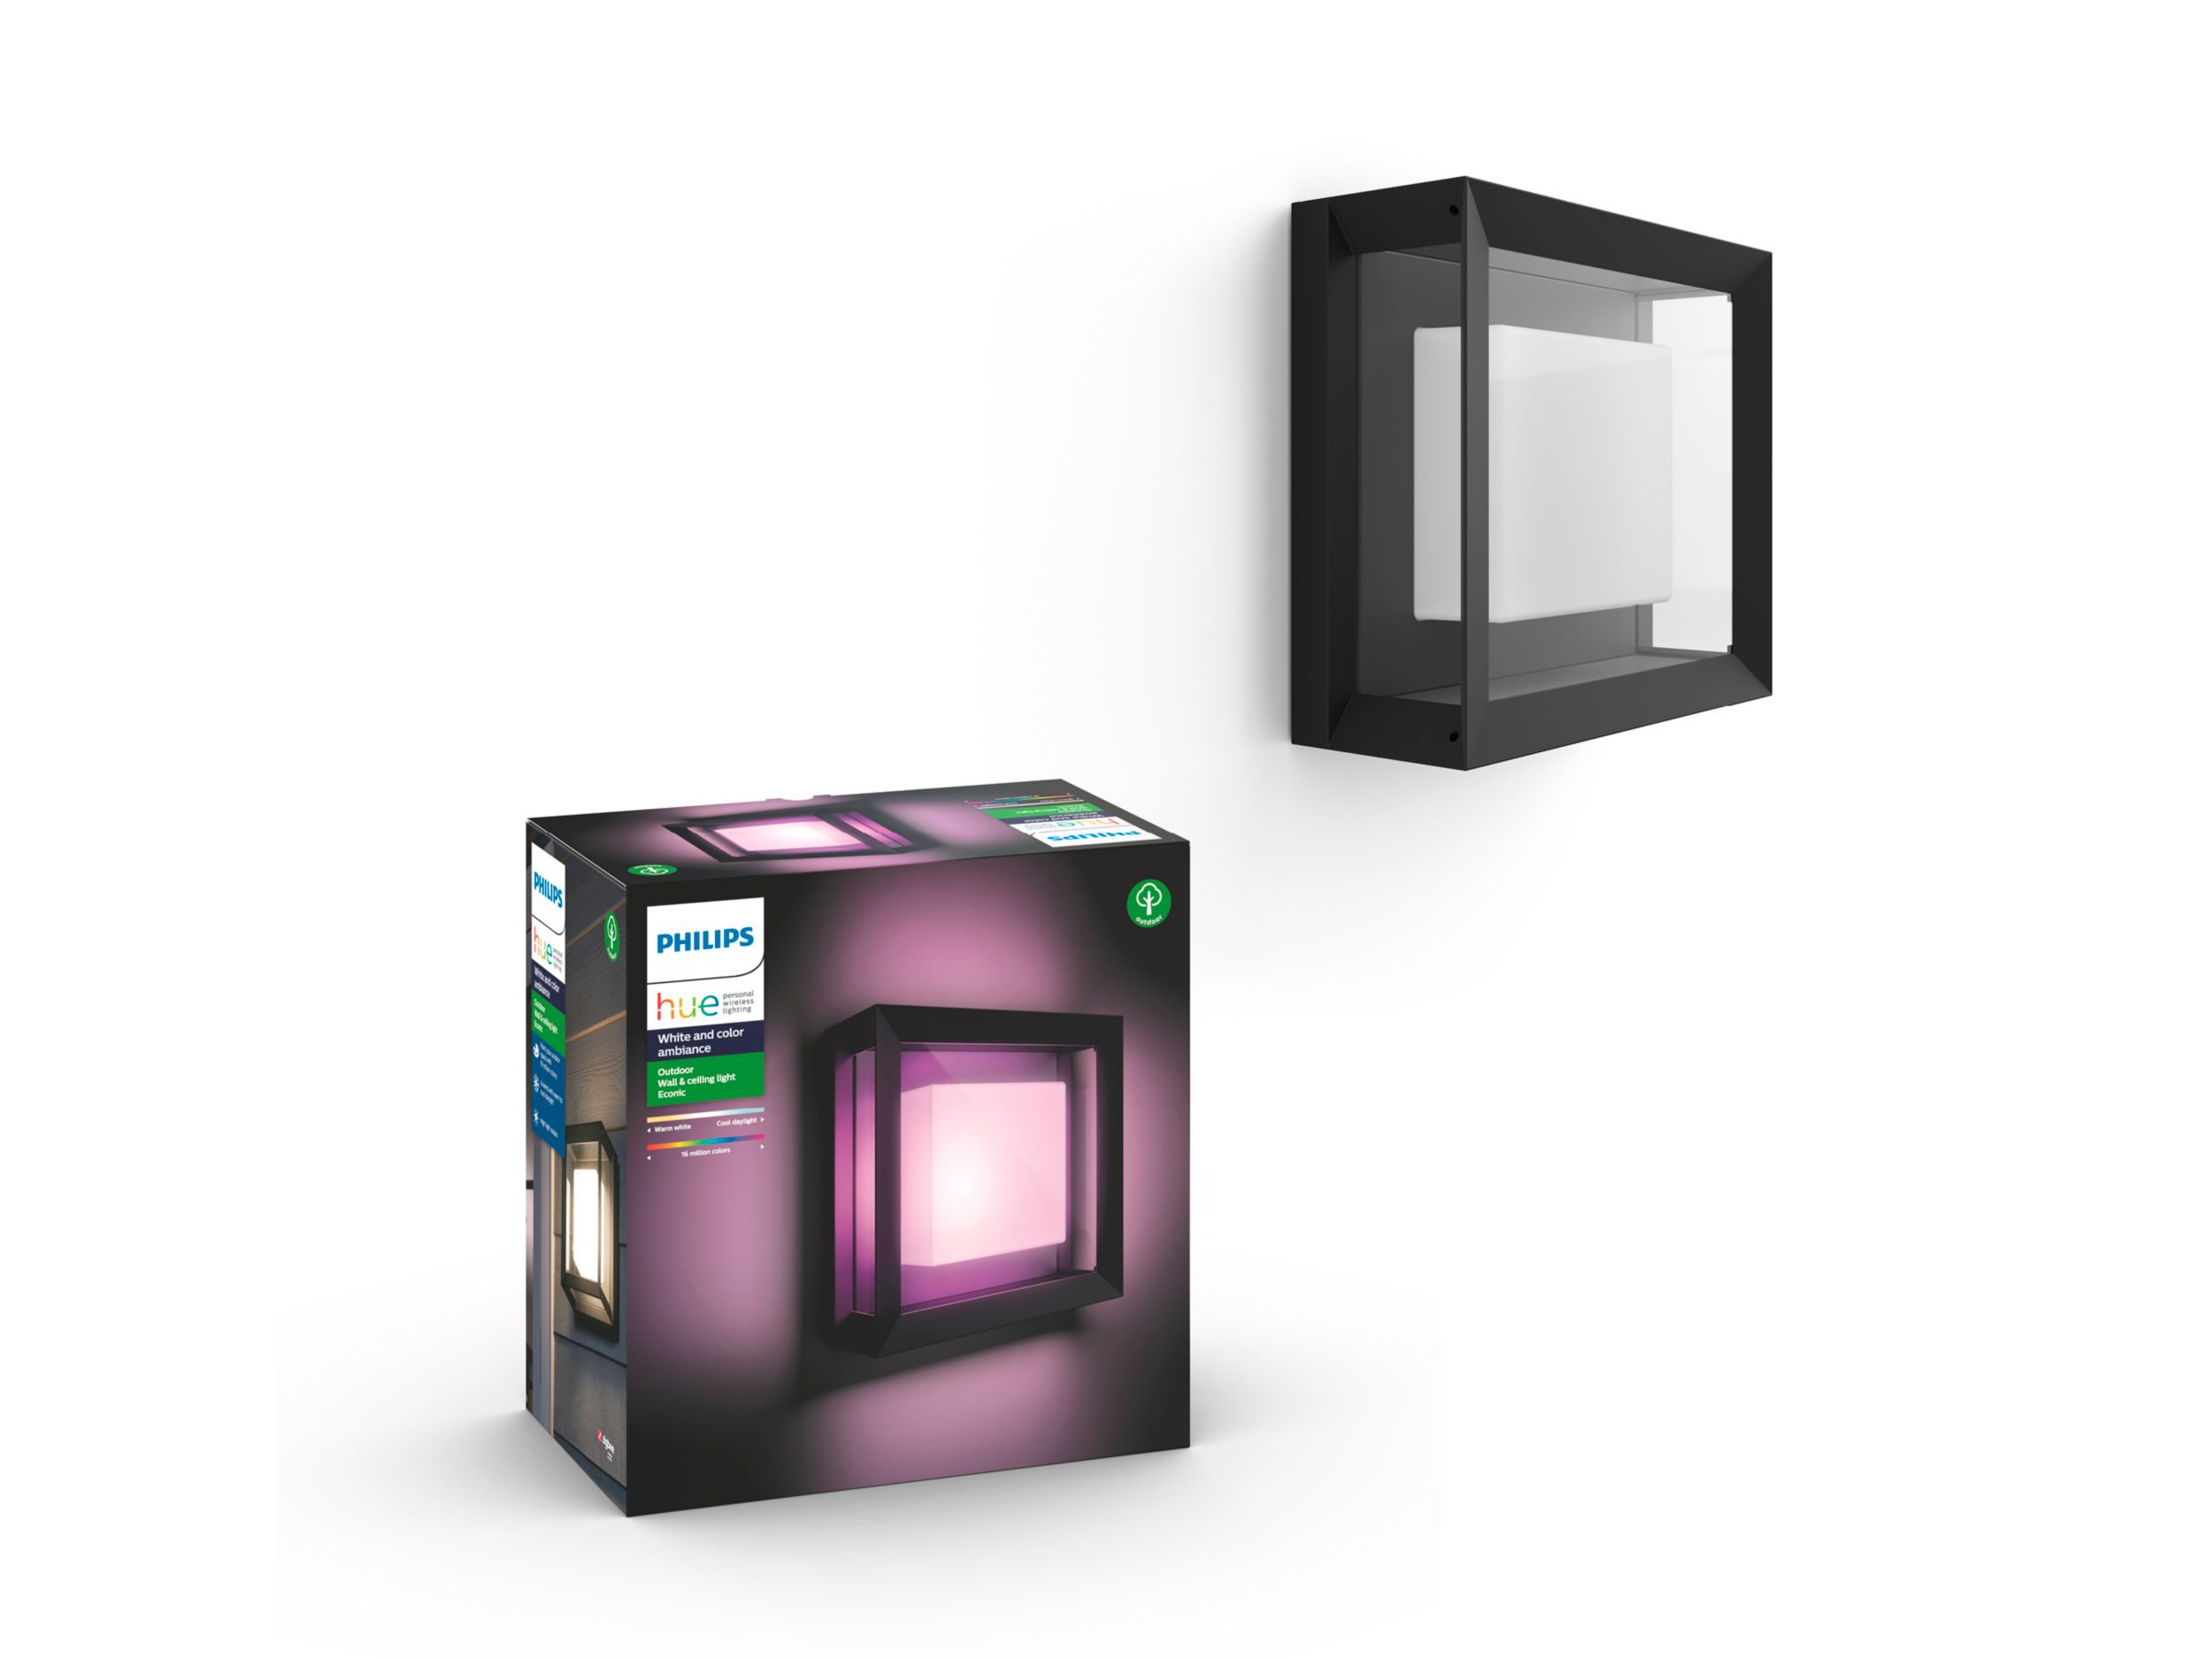 Philips Hue - Econic Square Wall Lantern Outdoor - White & Color Ambiance